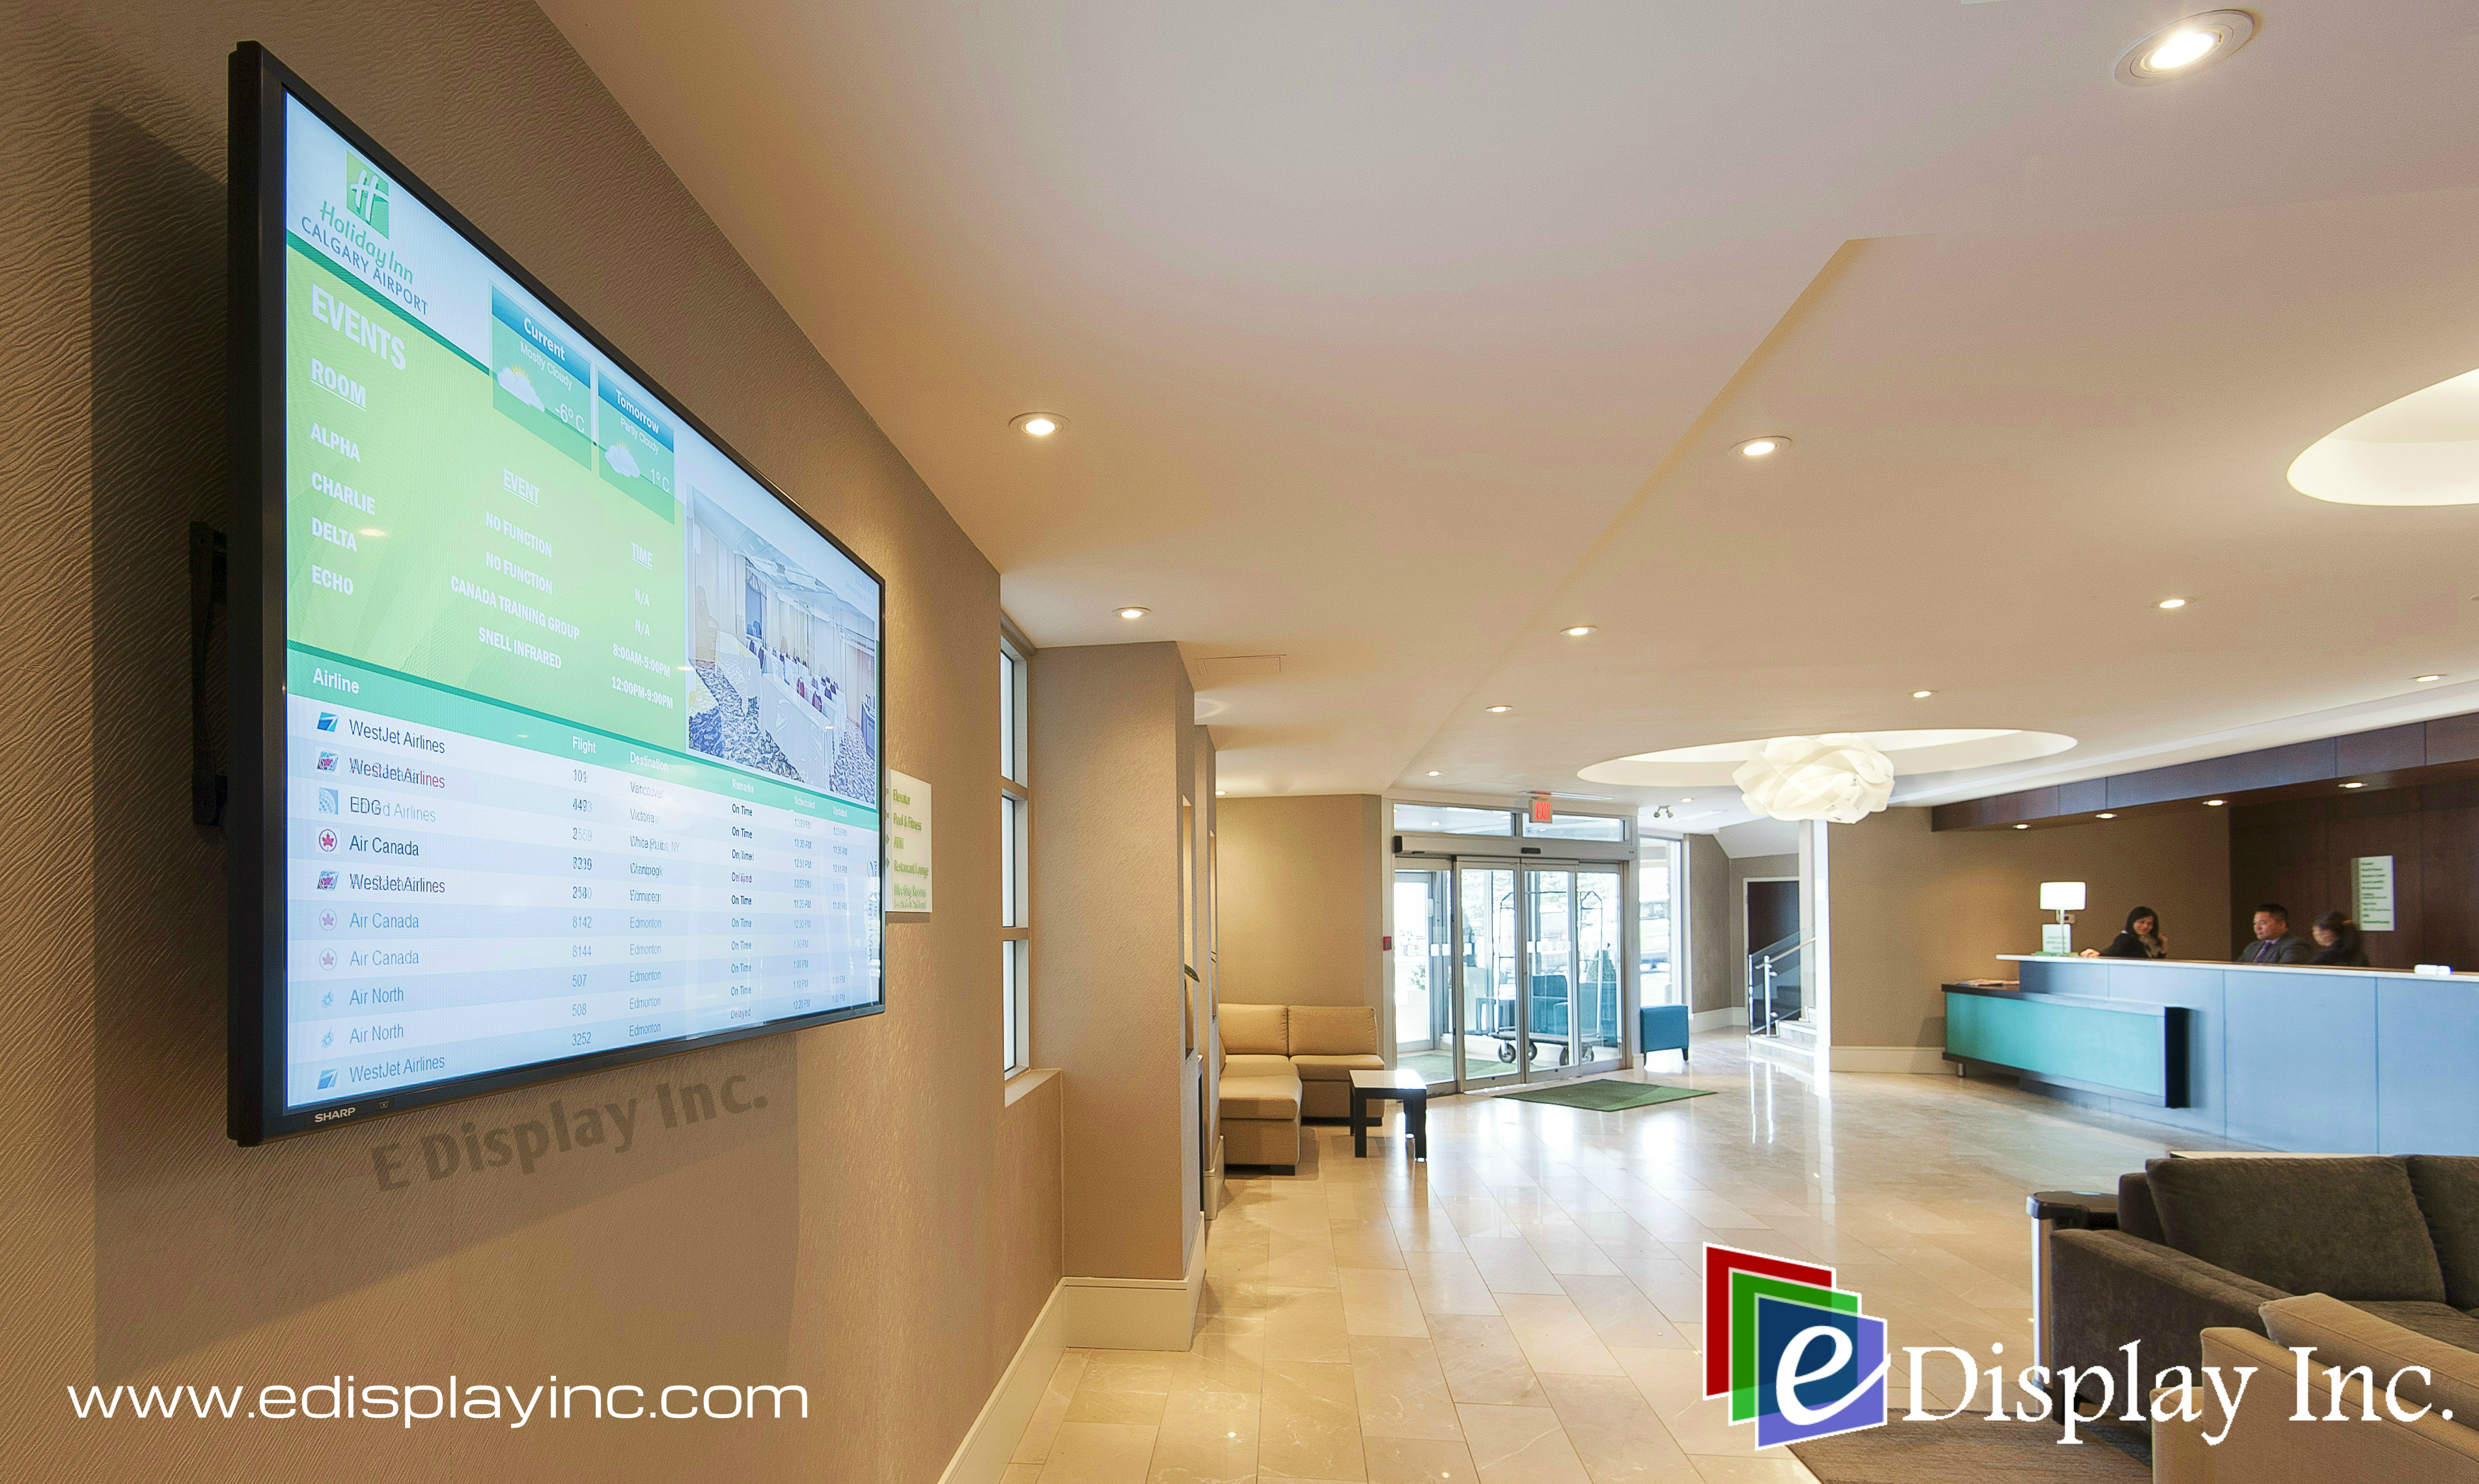 Hotel Digital Signage Case Study